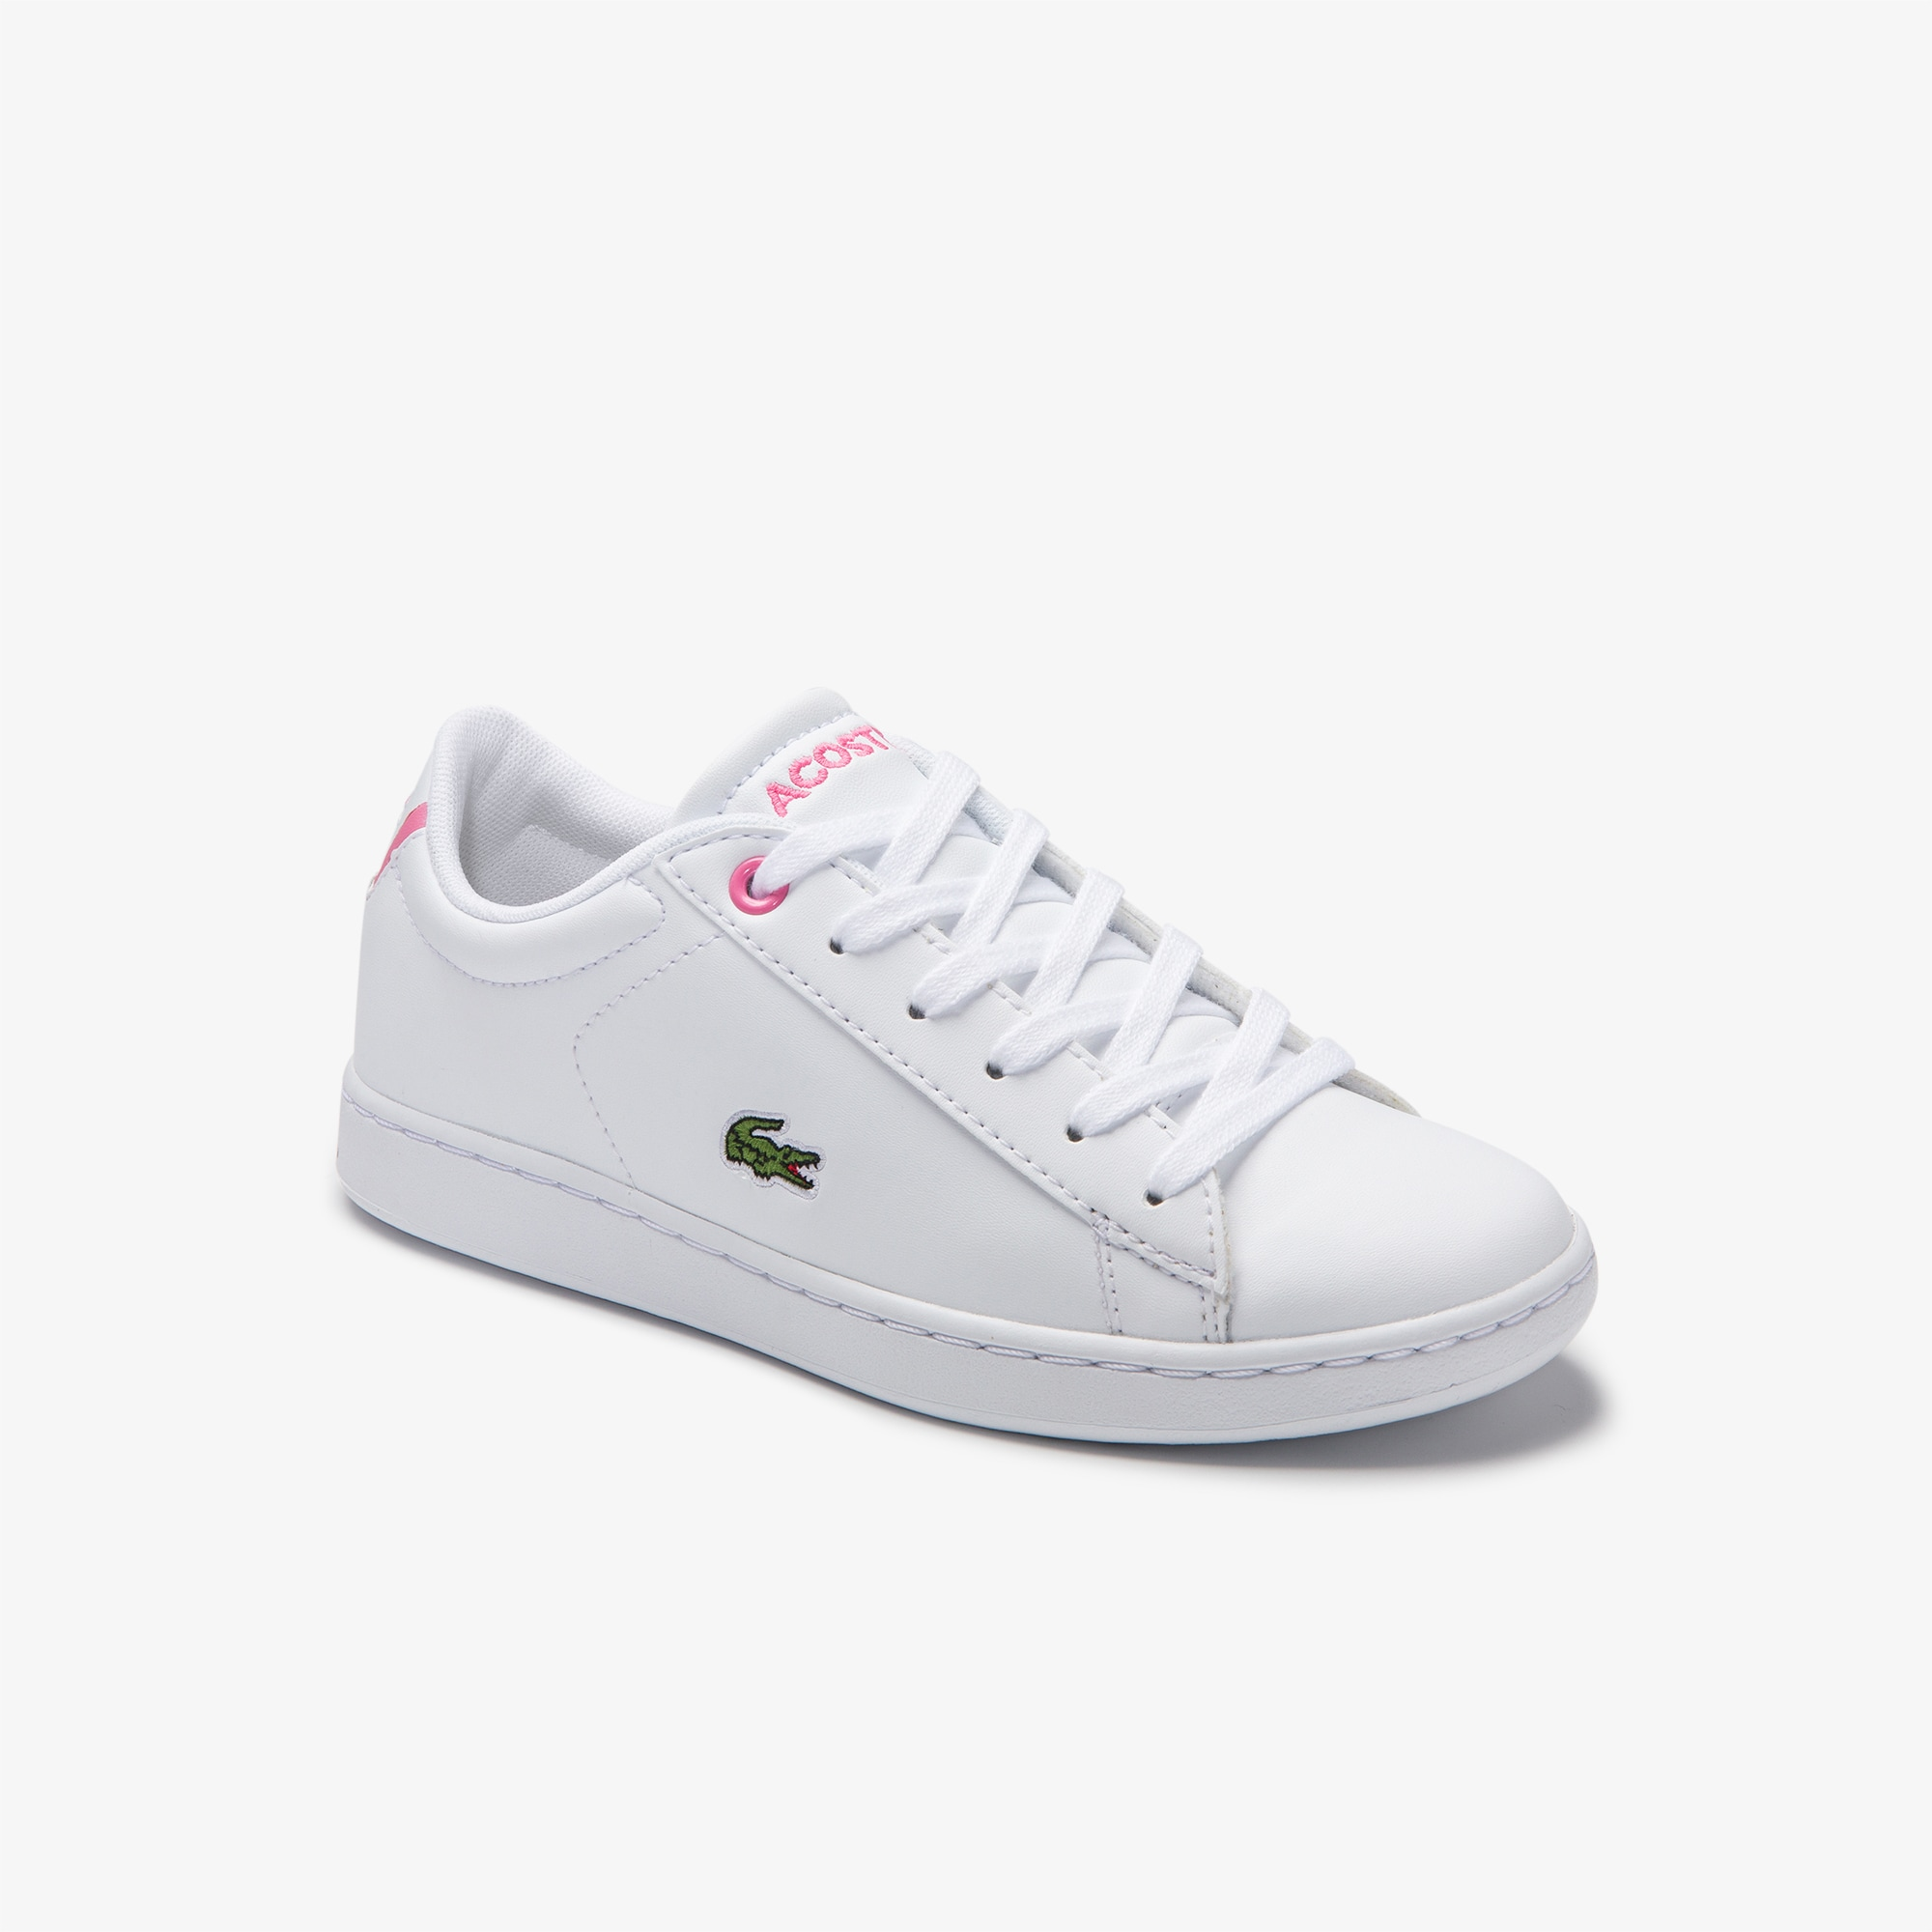 Lacoste Childrens Carnaby Evo Synthetic Sneakers